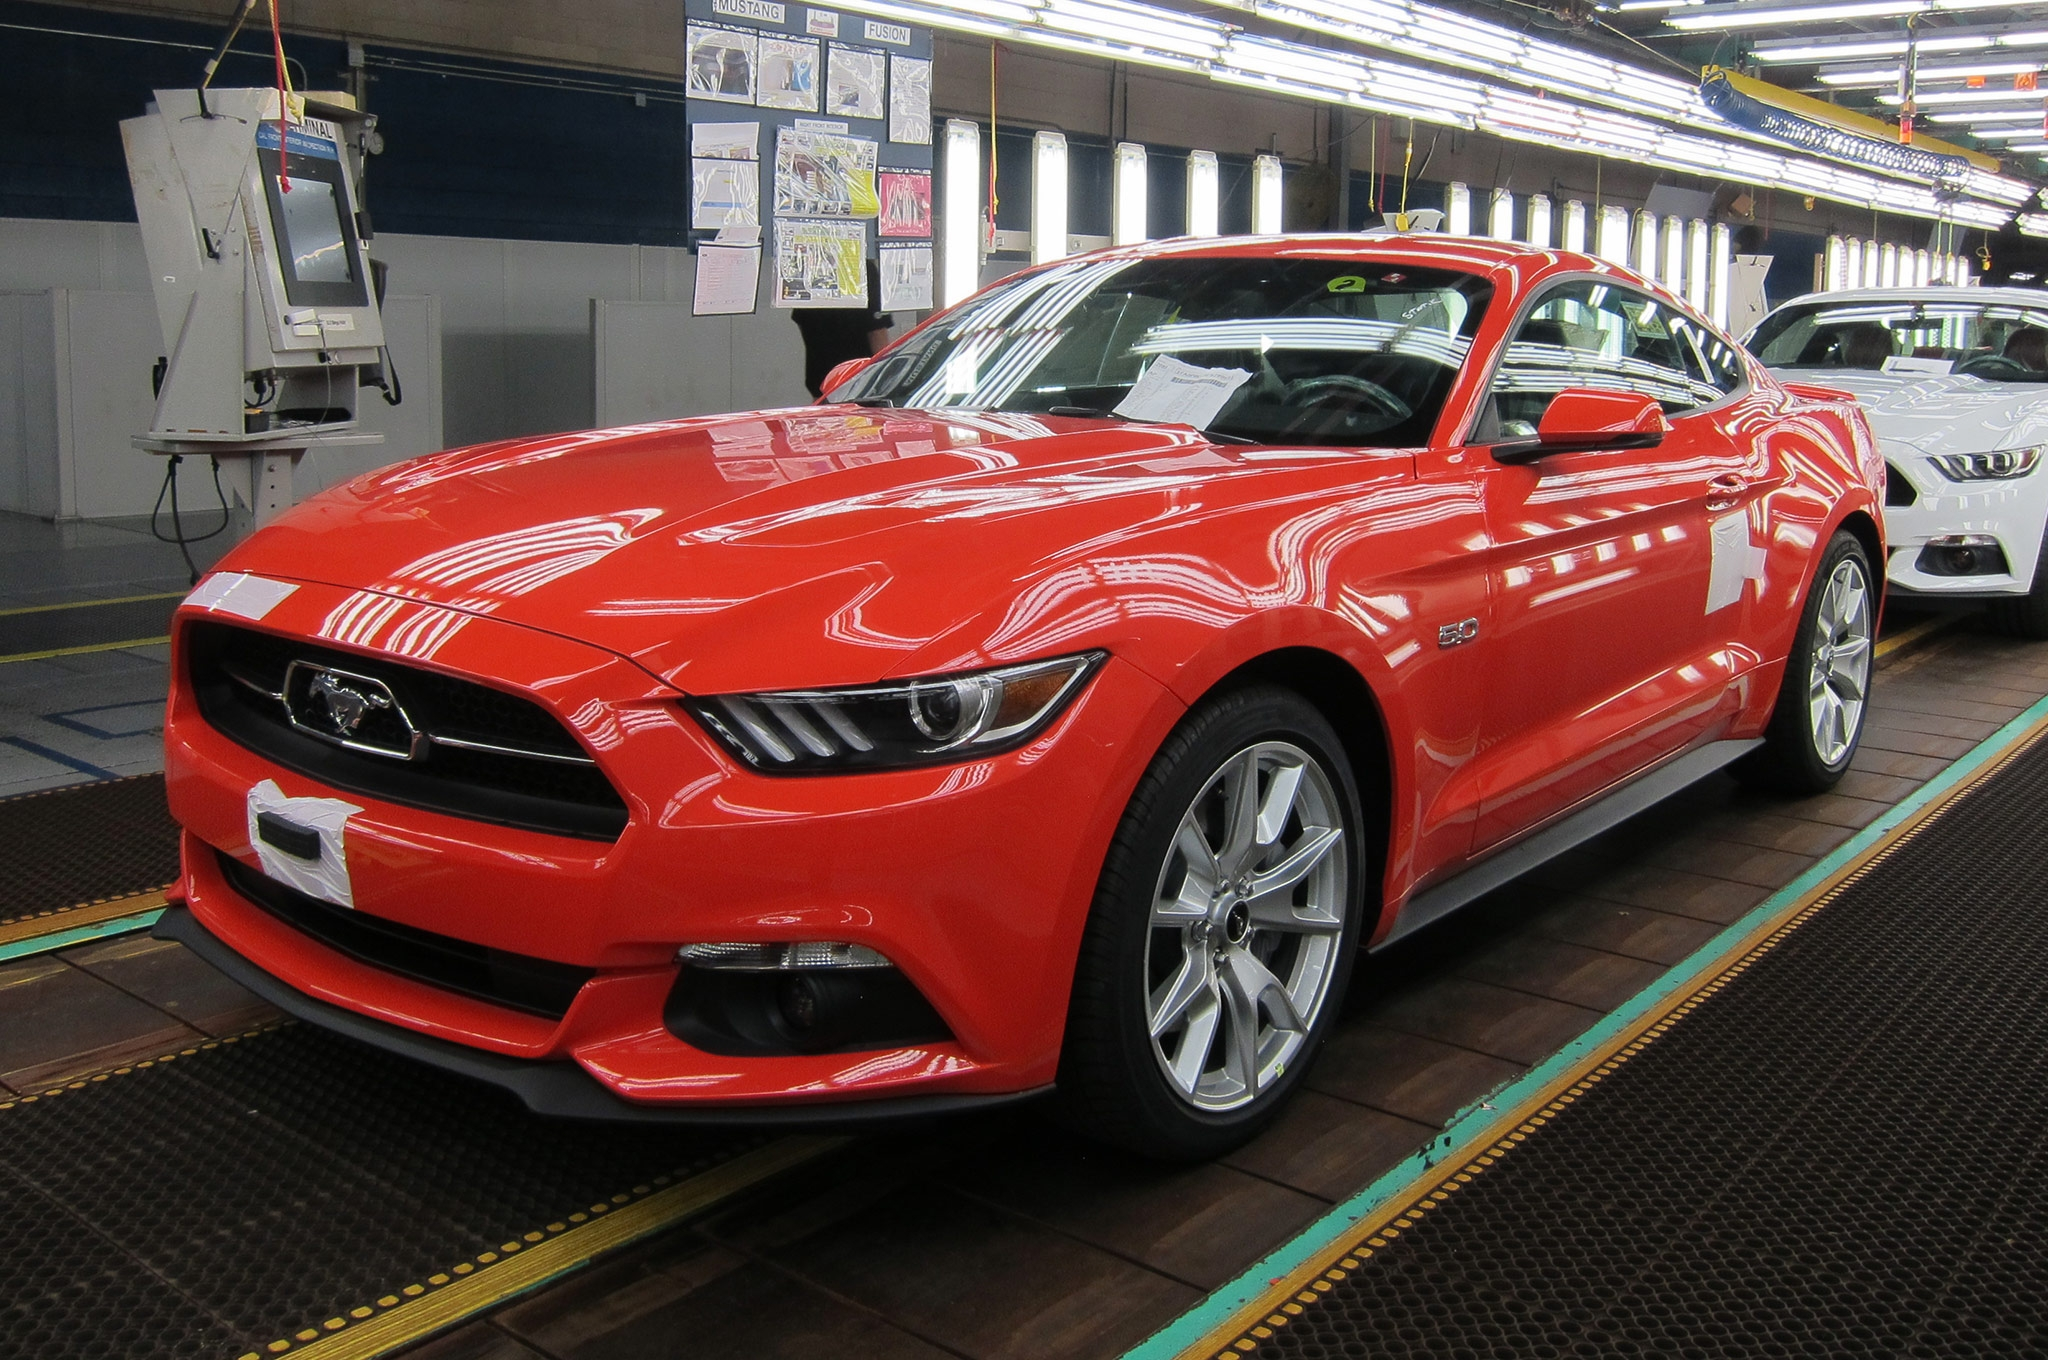 2015 Ford Mustang GT photo - 2